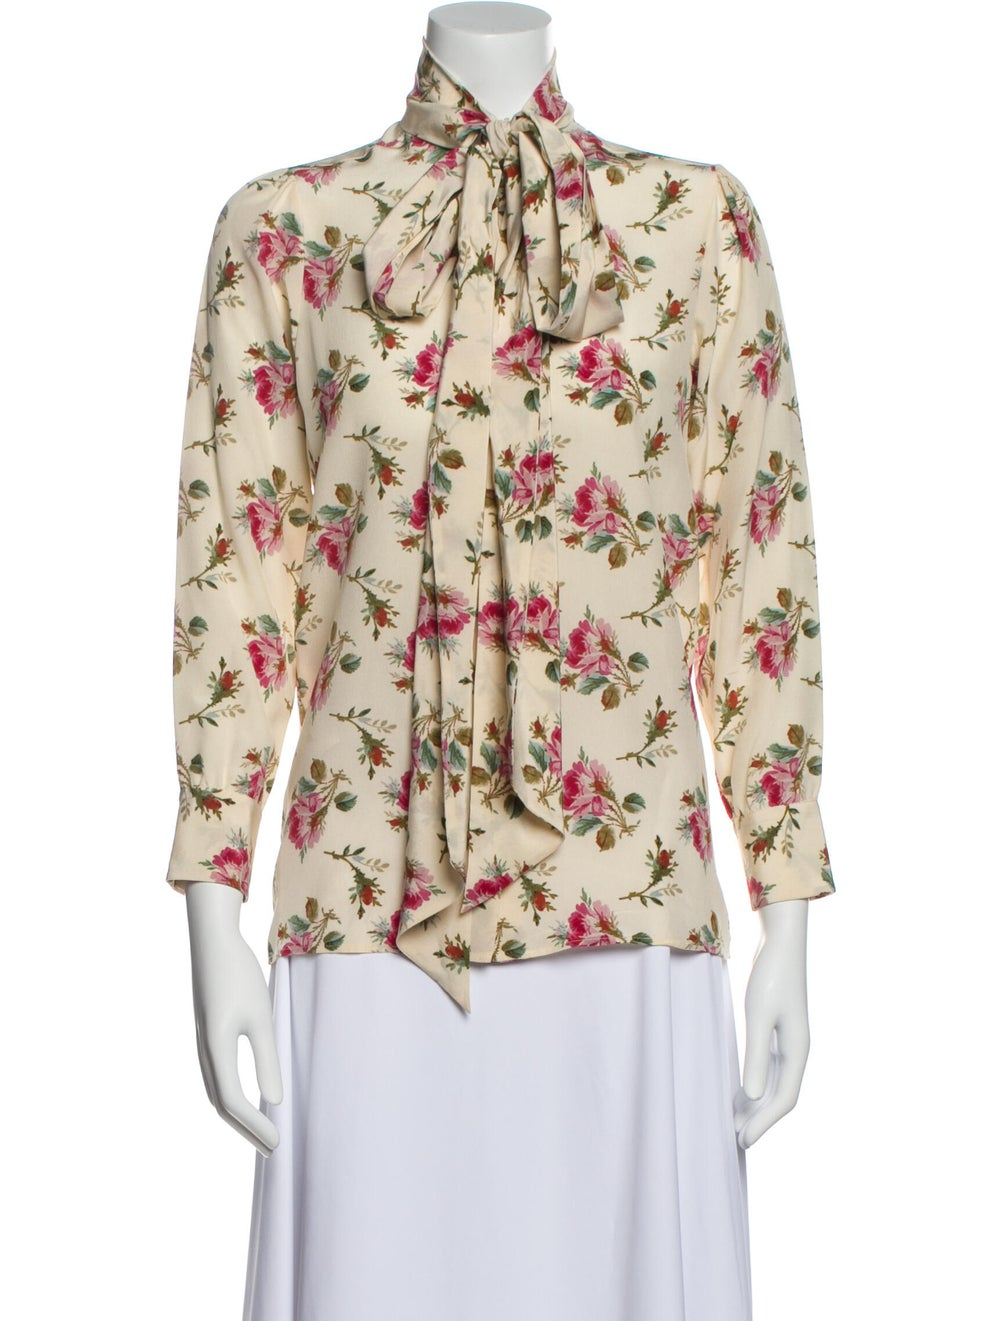 Gucci 2017 Floral Print Silk Blouse w/ Tags - image 1